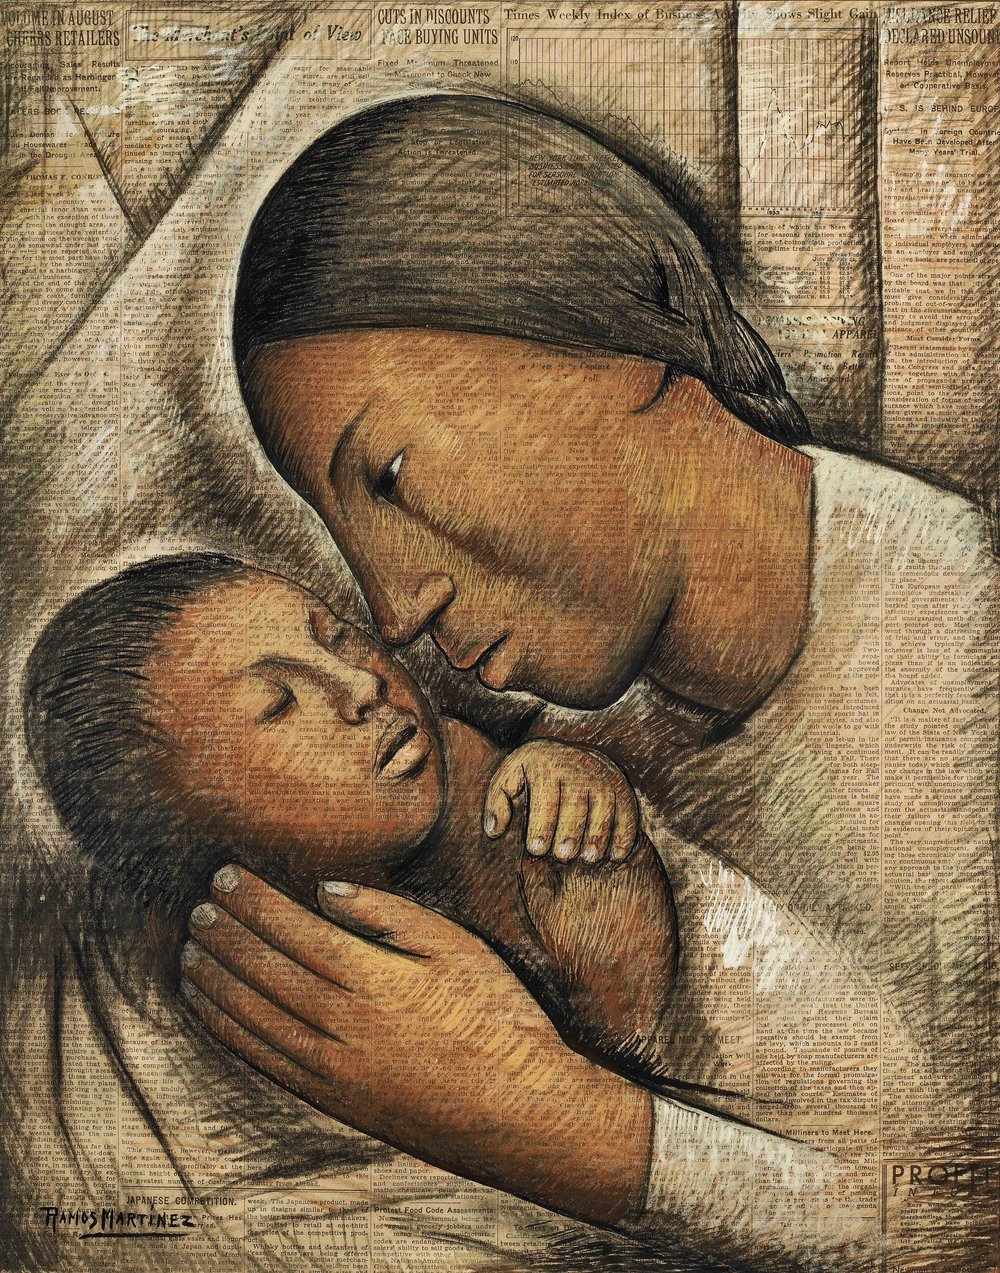 Amor de Madre / Tender Love  ca. 1934 tempera on newprint / temple sobre papel periódico ( New York Times ) 20.8 x 16.5 inches; 52.7 x 41.9 centímetros Private collection